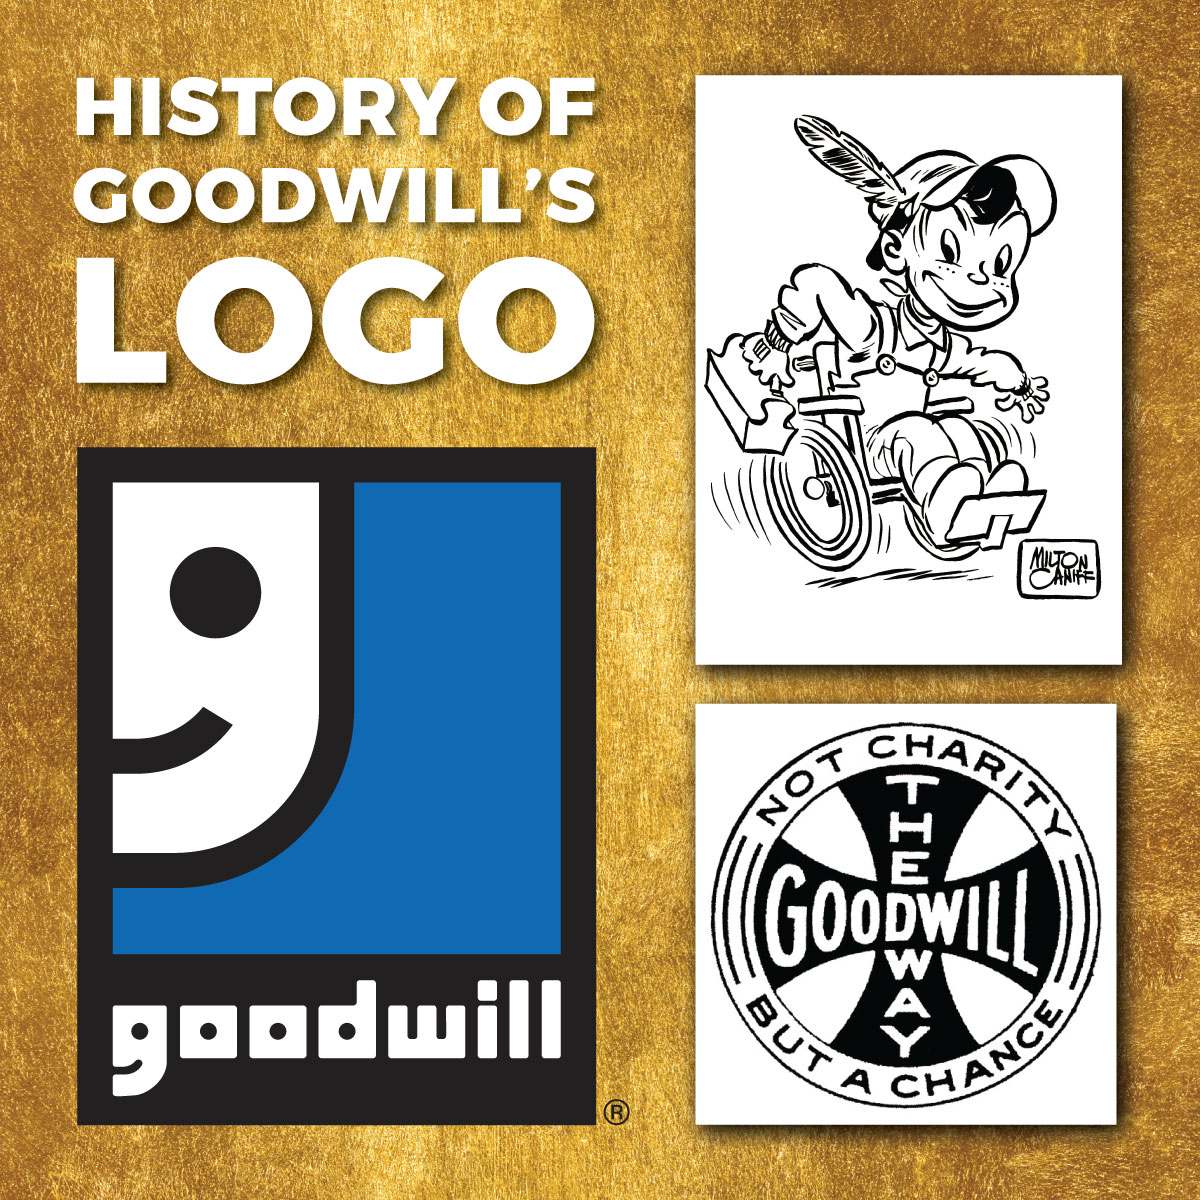 The History of Goodwill's Logo